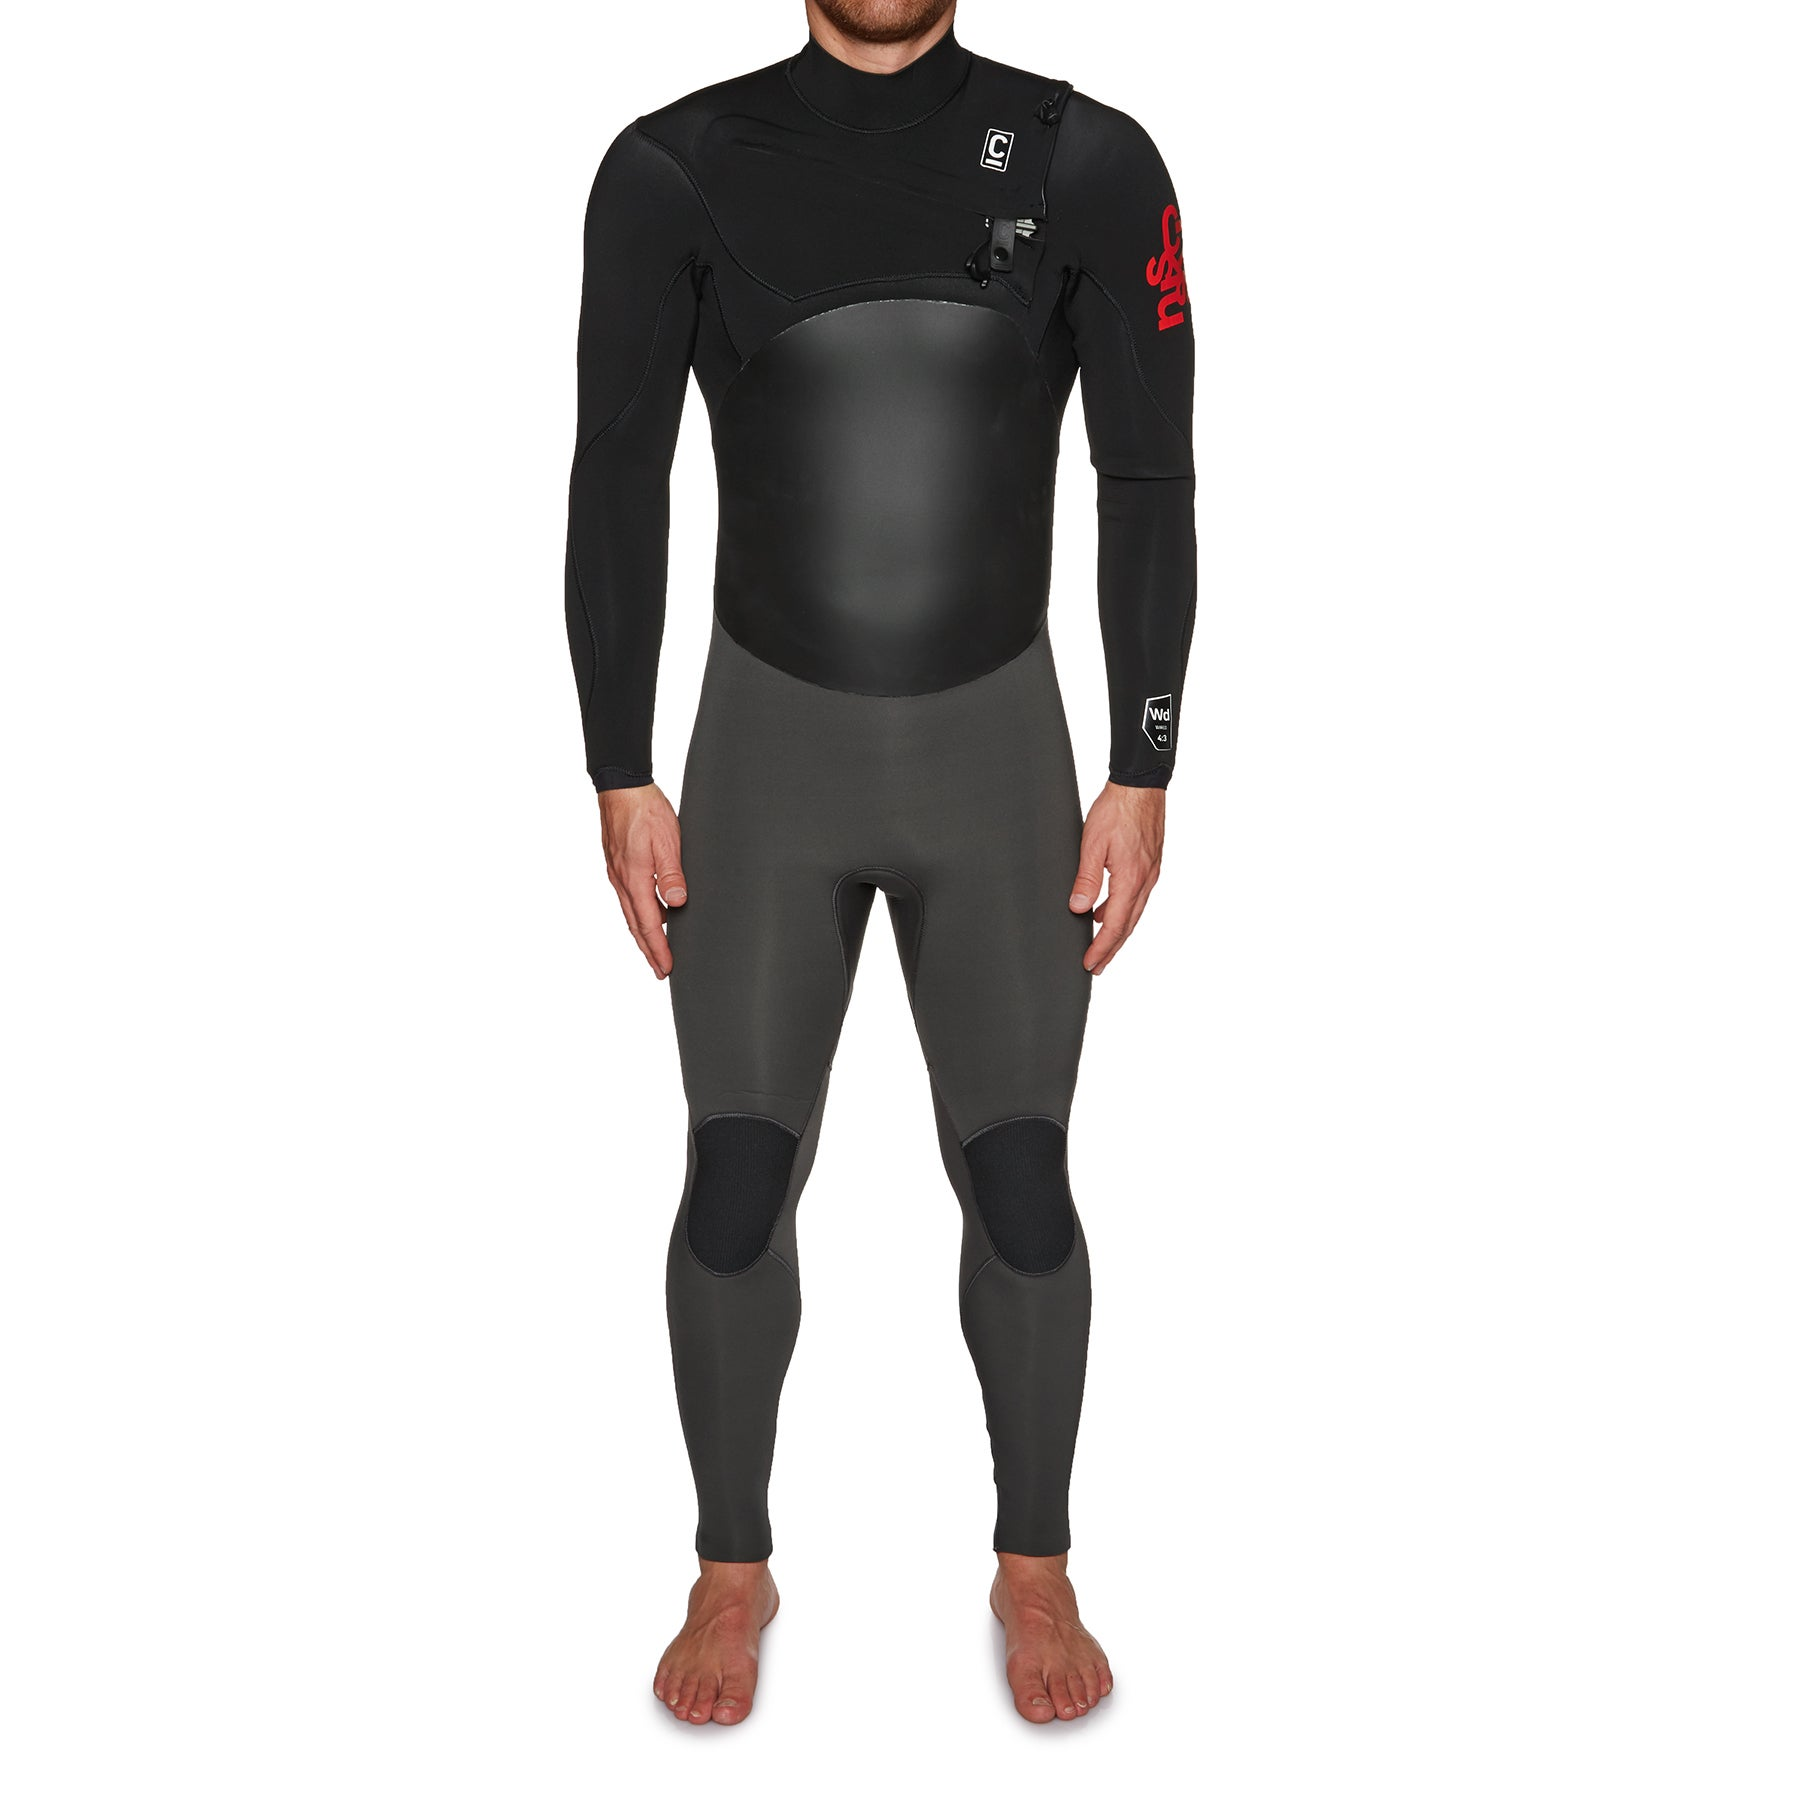 C-Skins Wired 4/3mm Chest Zip Wetsuit - Gunmetal Black Warm Red